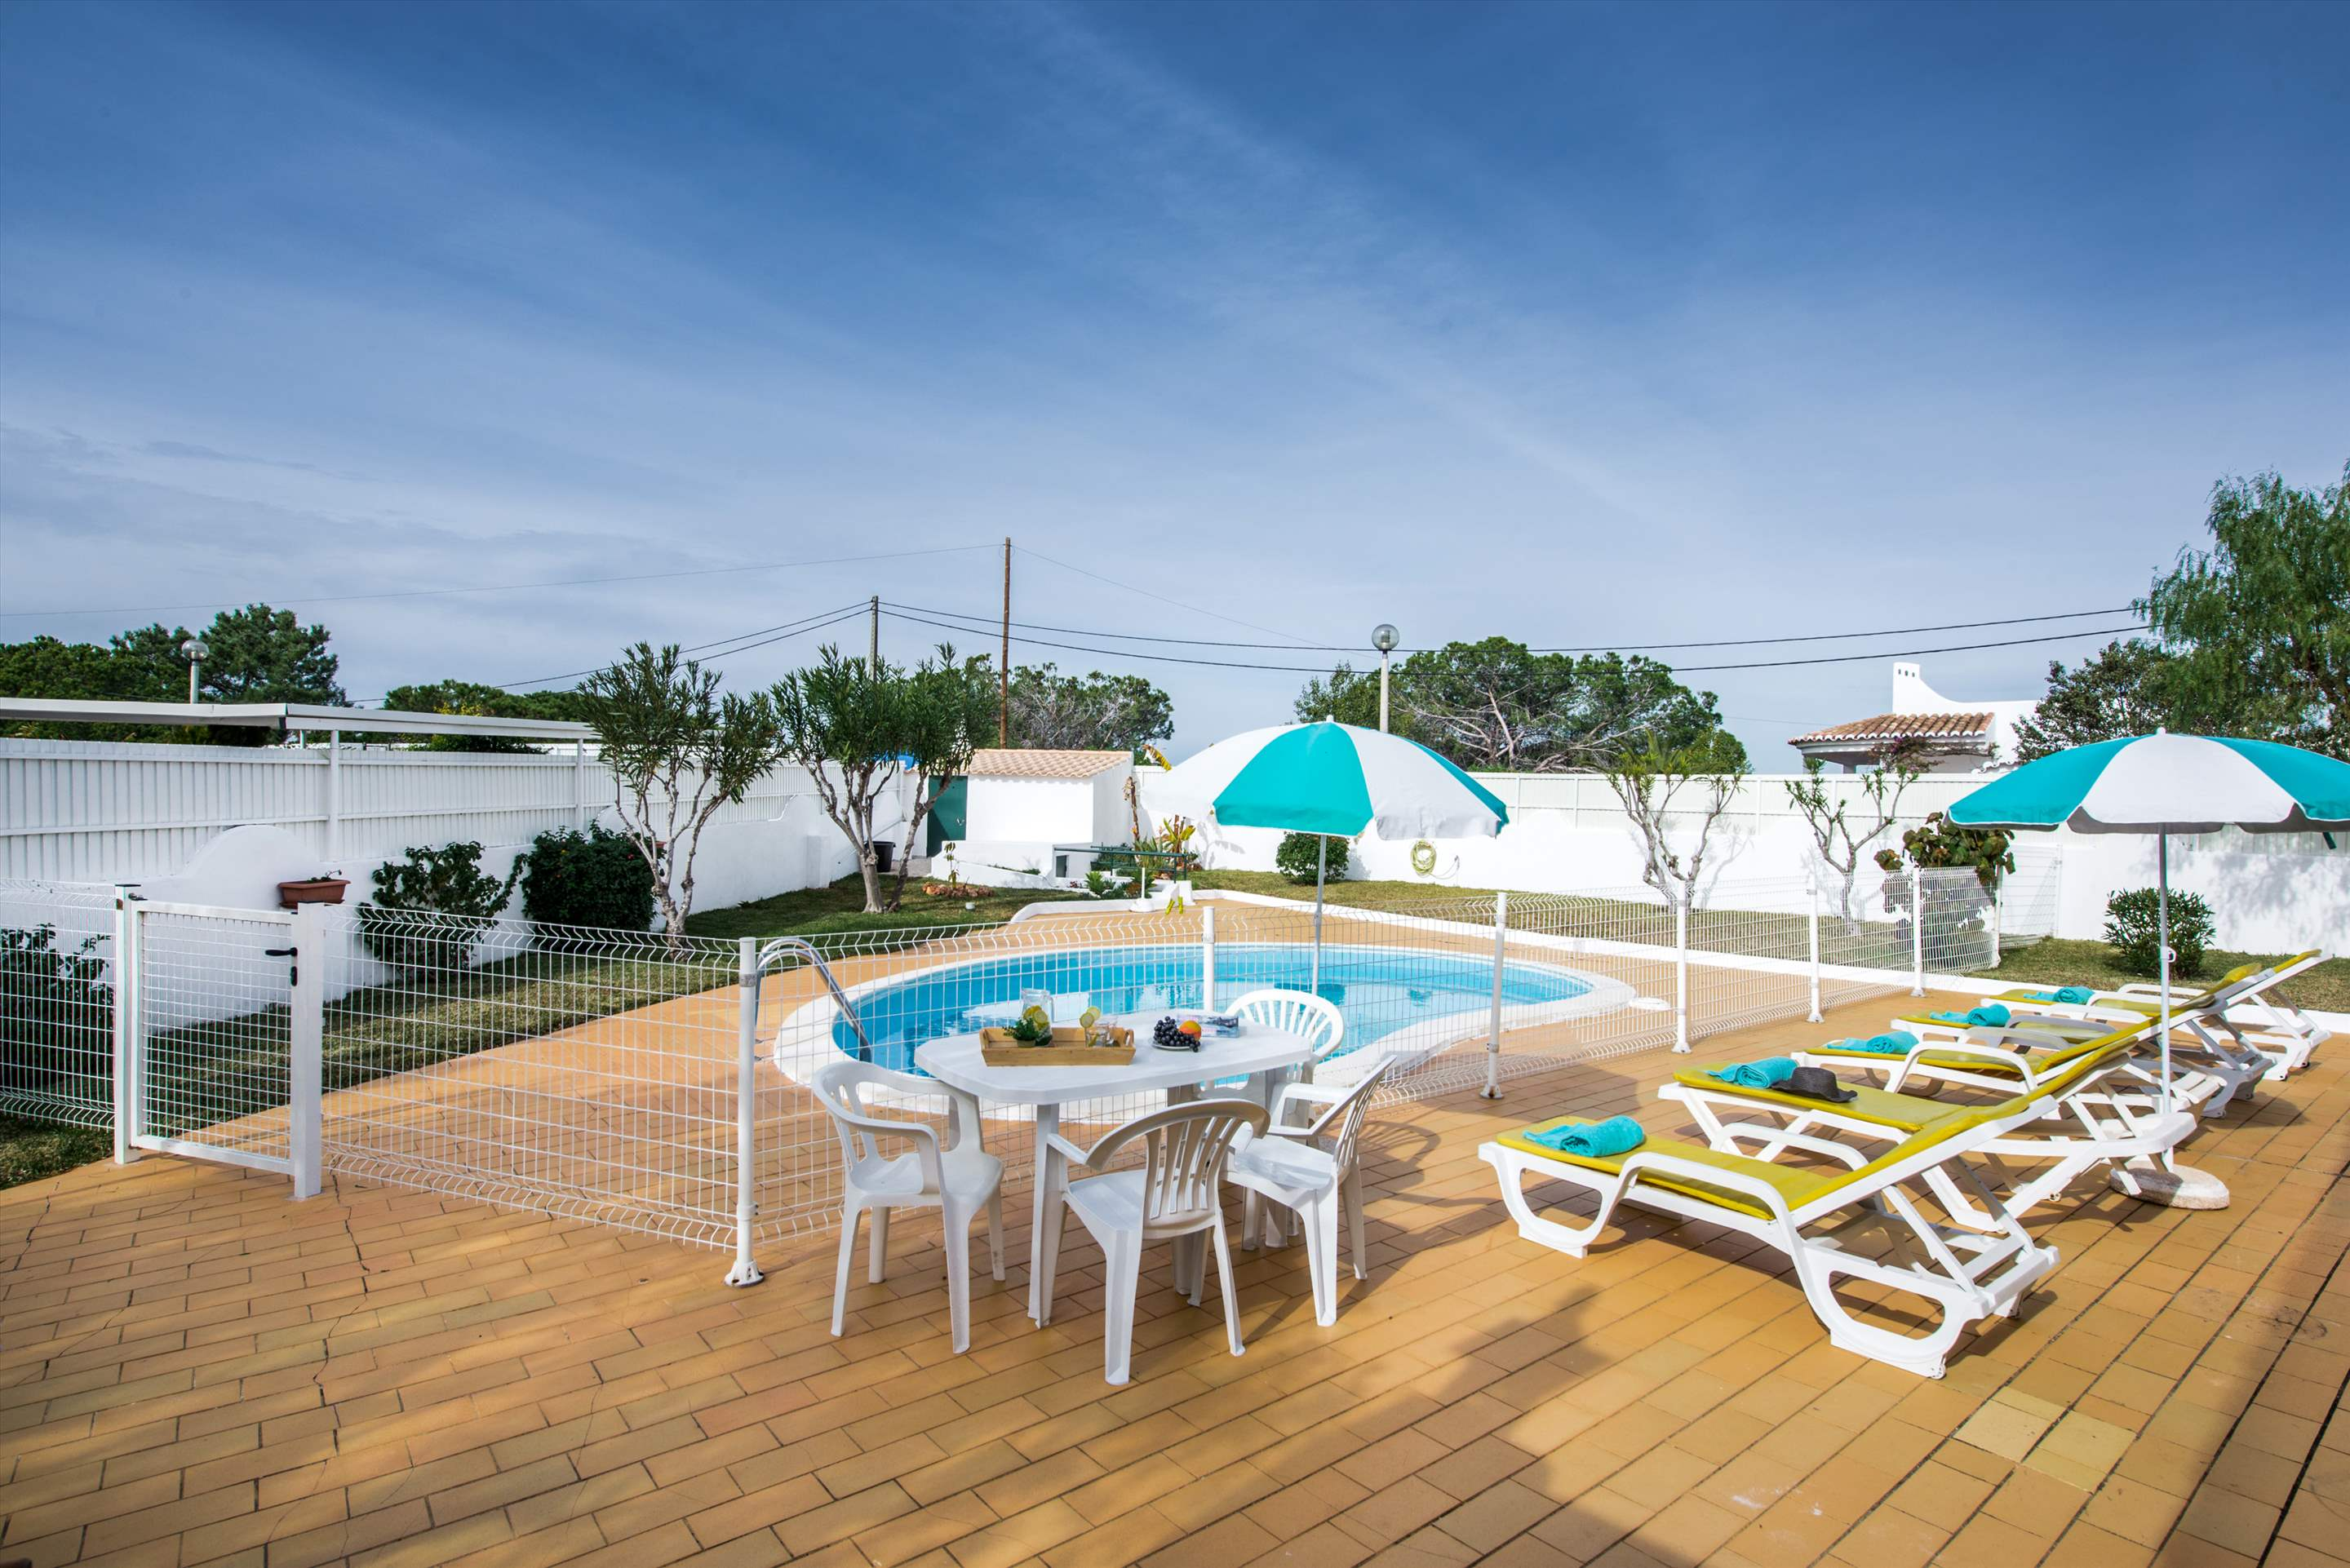 Casa Isabel, 5-6 persons rate, 3 bedroom villa in Gale, Vale da Parra and Guia, Algarve Photo #10